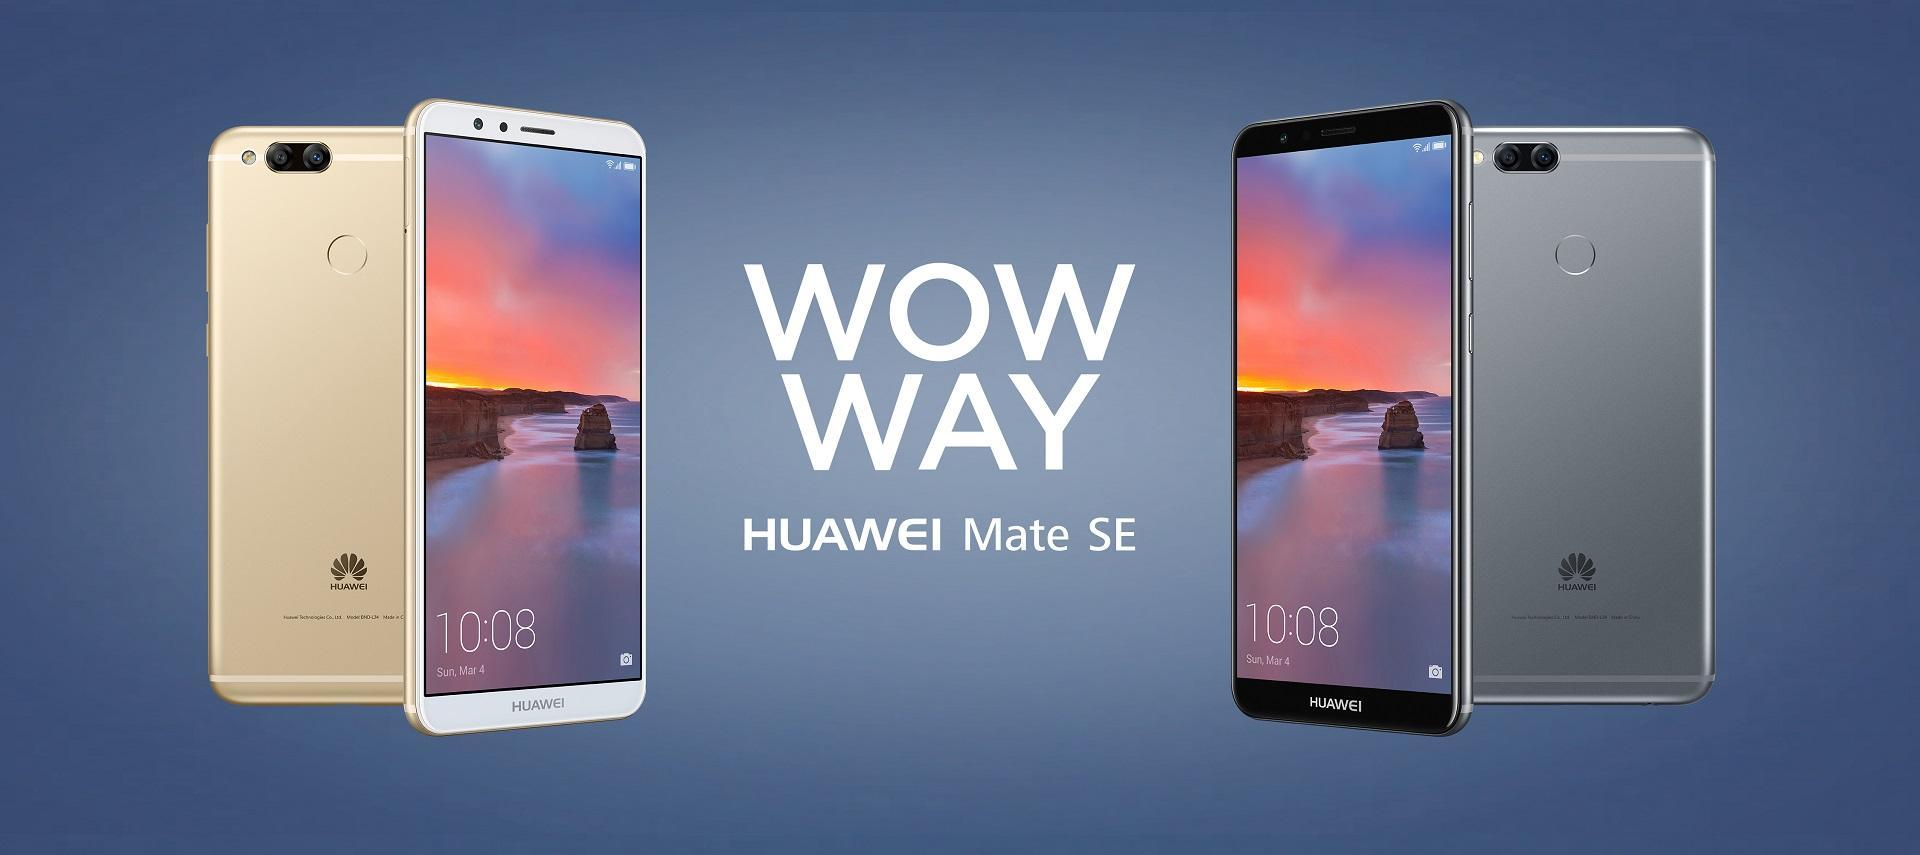 WOW WAY HUAWEI Mate SE